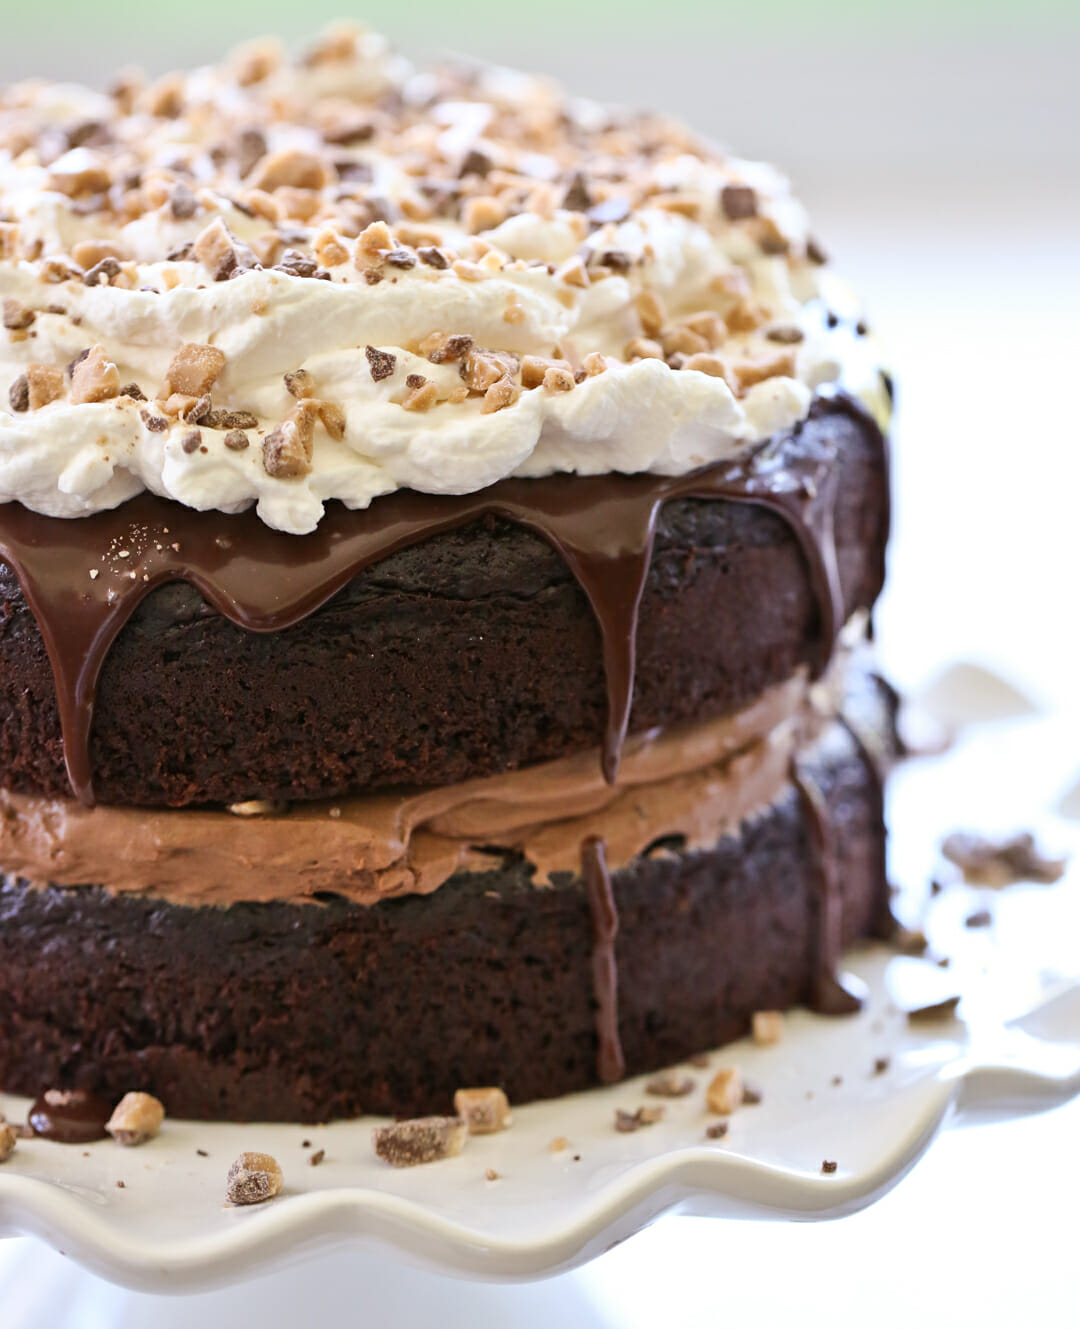 chocolate cake with whipped cream on top